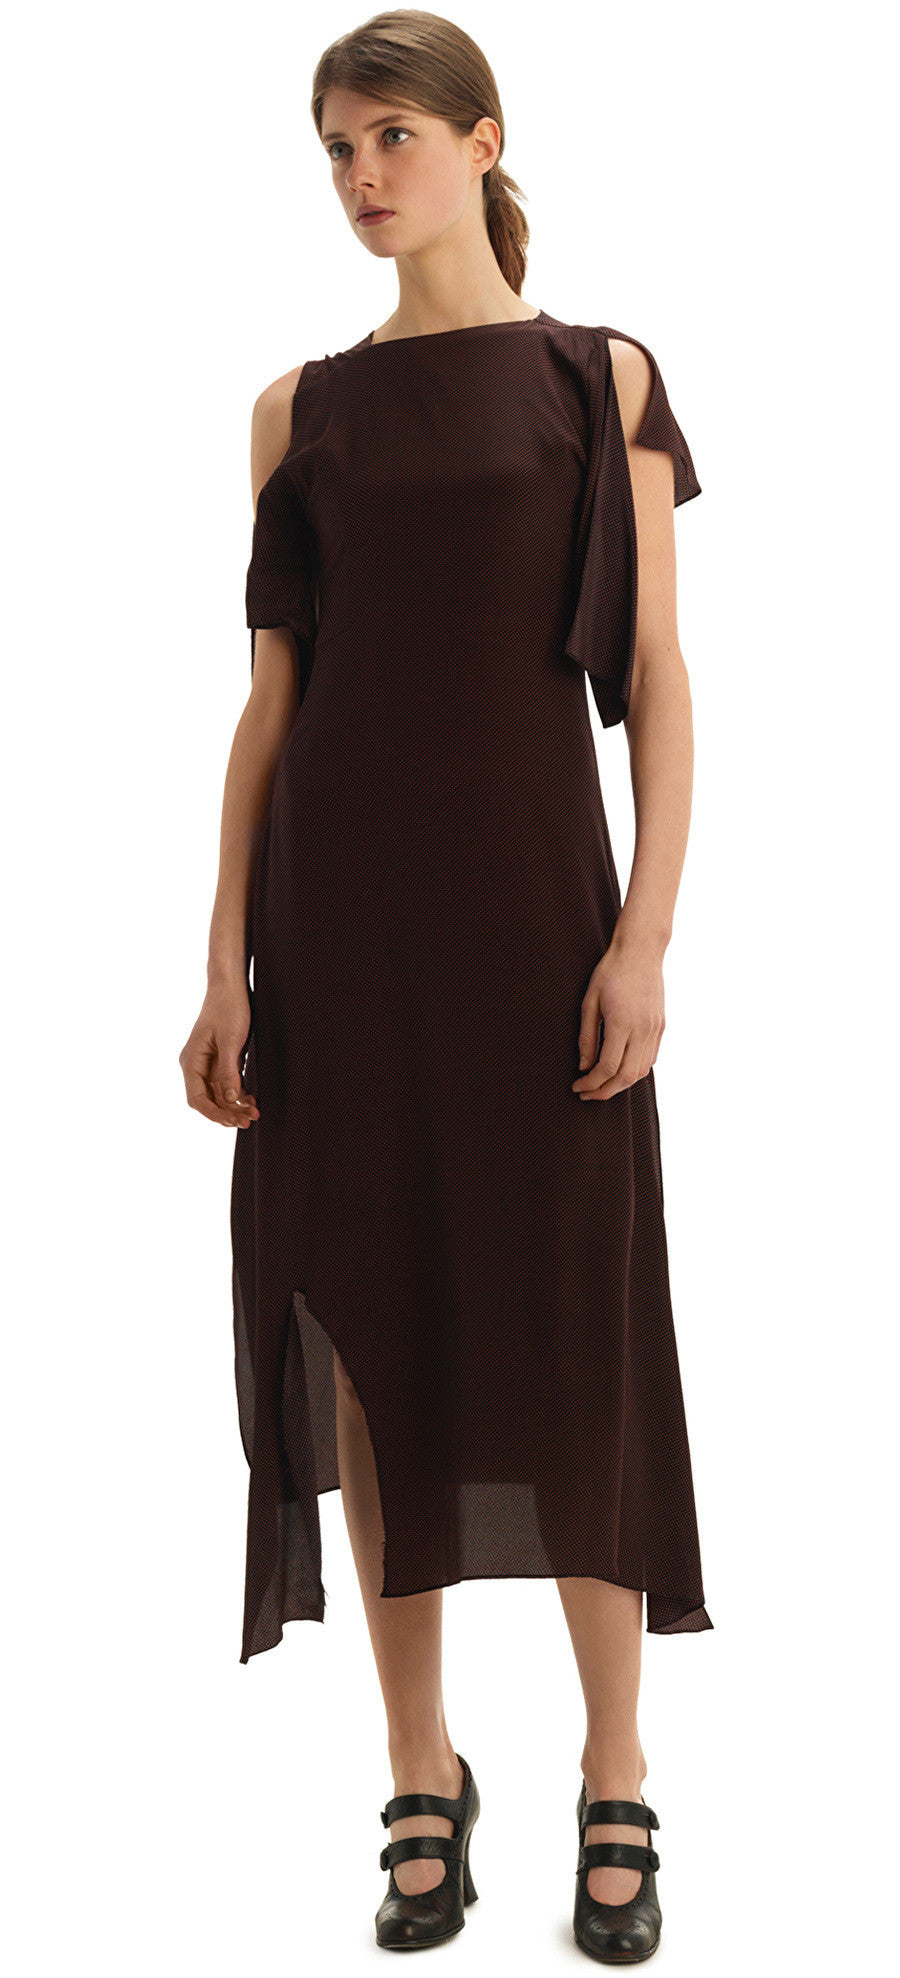 CICERO OXBLOOD SPOT DRESS